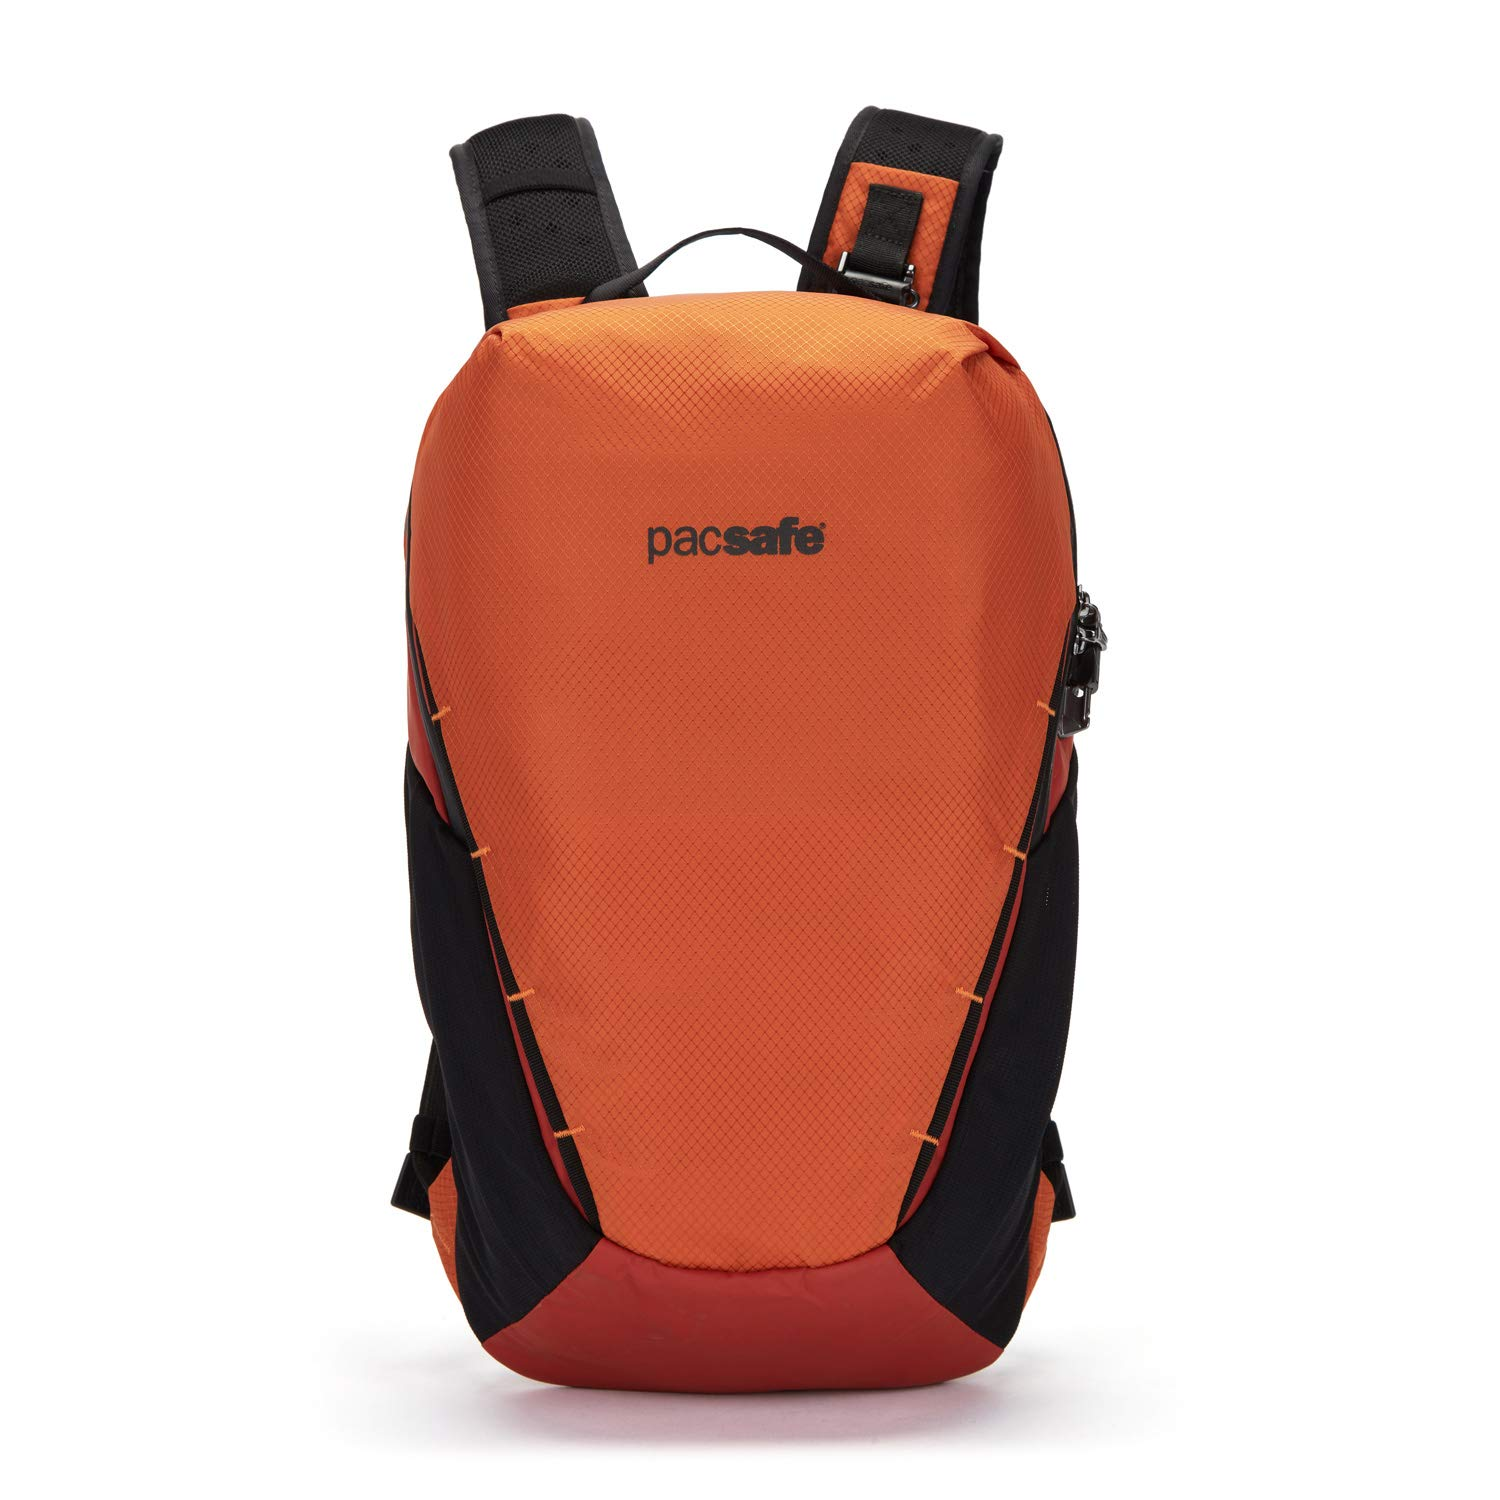 Pacsafe Venturesafe X18 18L Anti-Theft Adventure Backpack-Fits 13'' Laptop, Burnt Orange, 18 Liter by Pacsafe